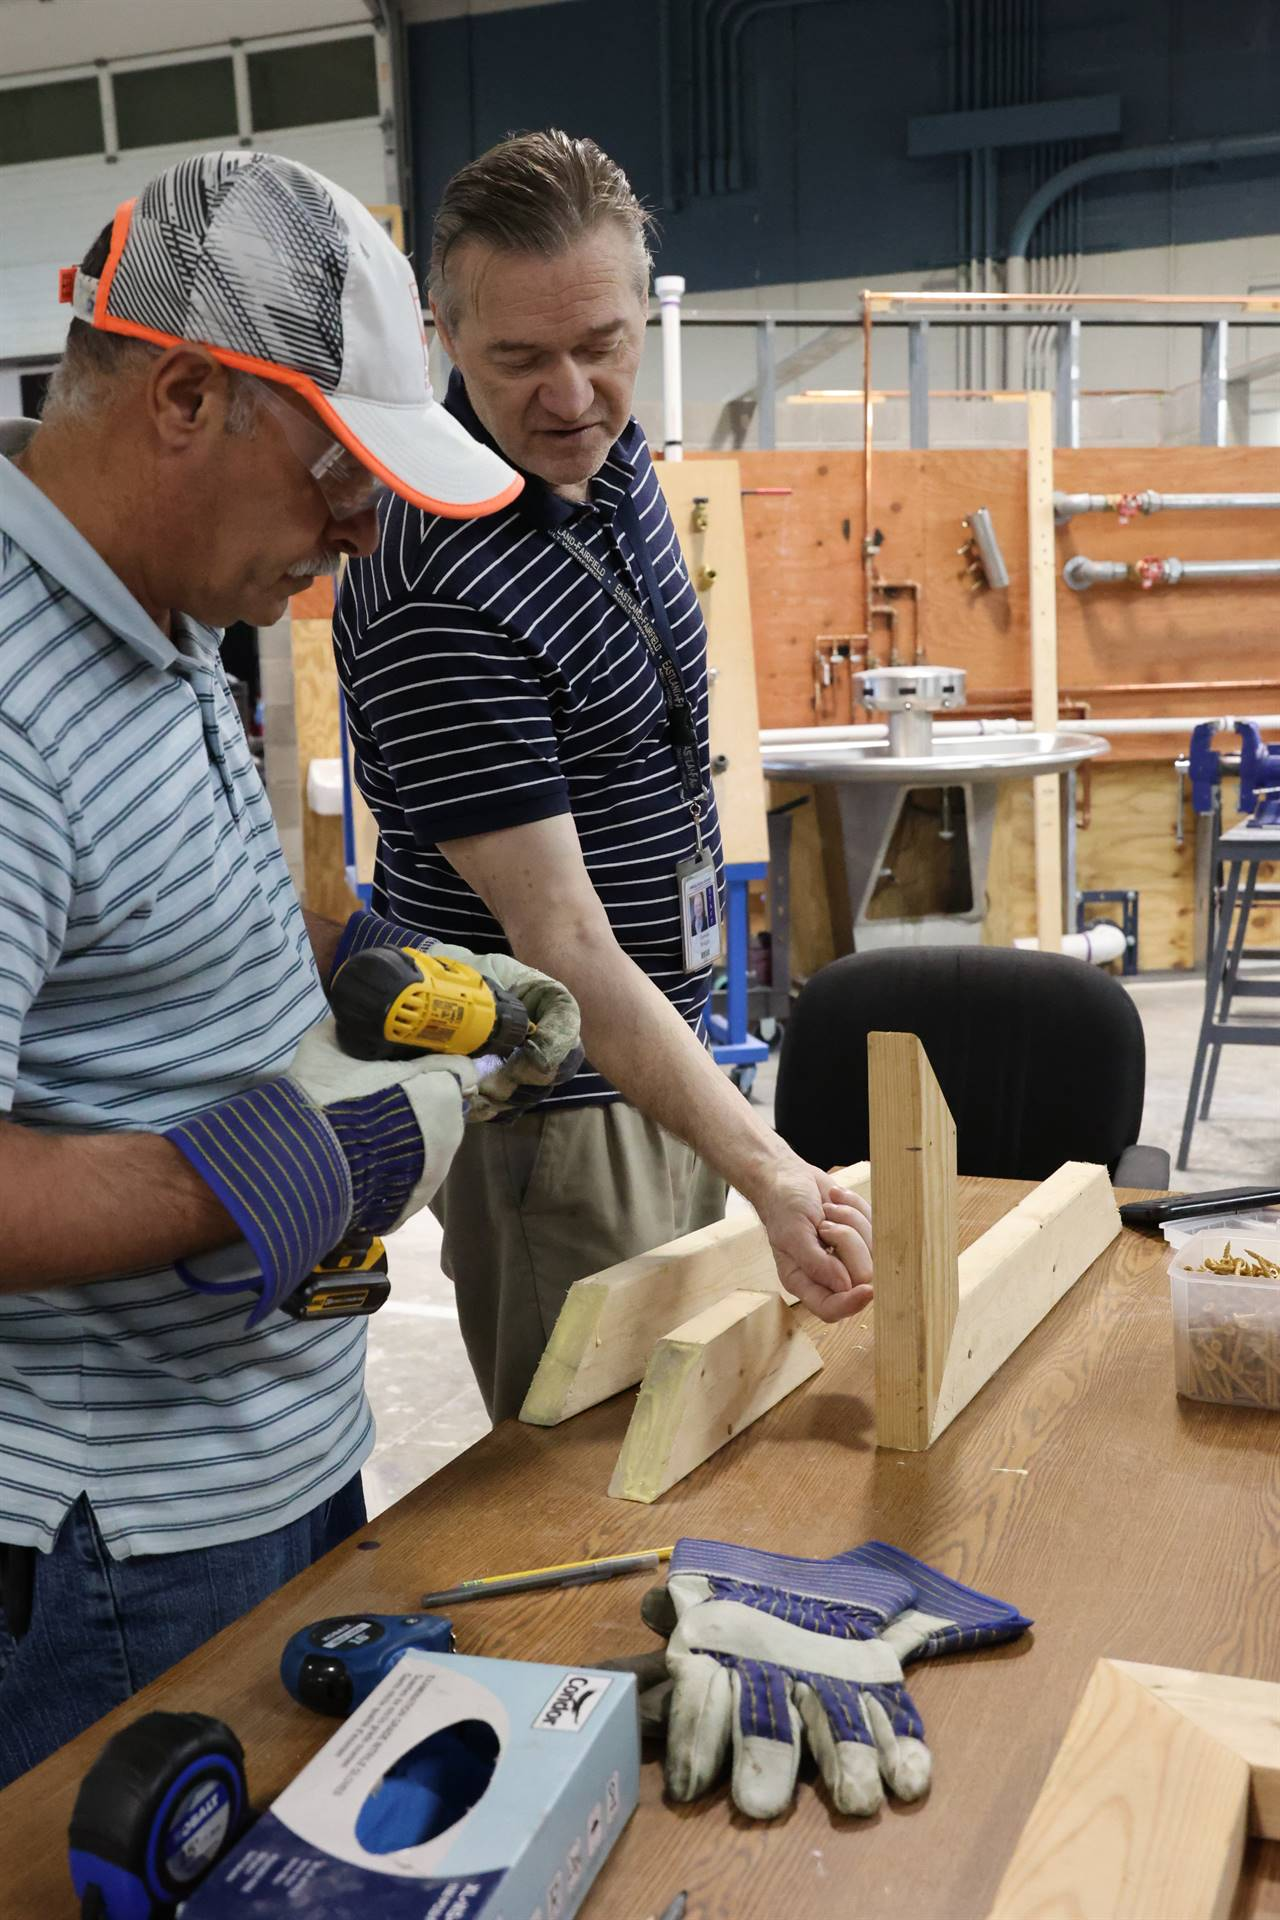 Instructor advising student on wood structure